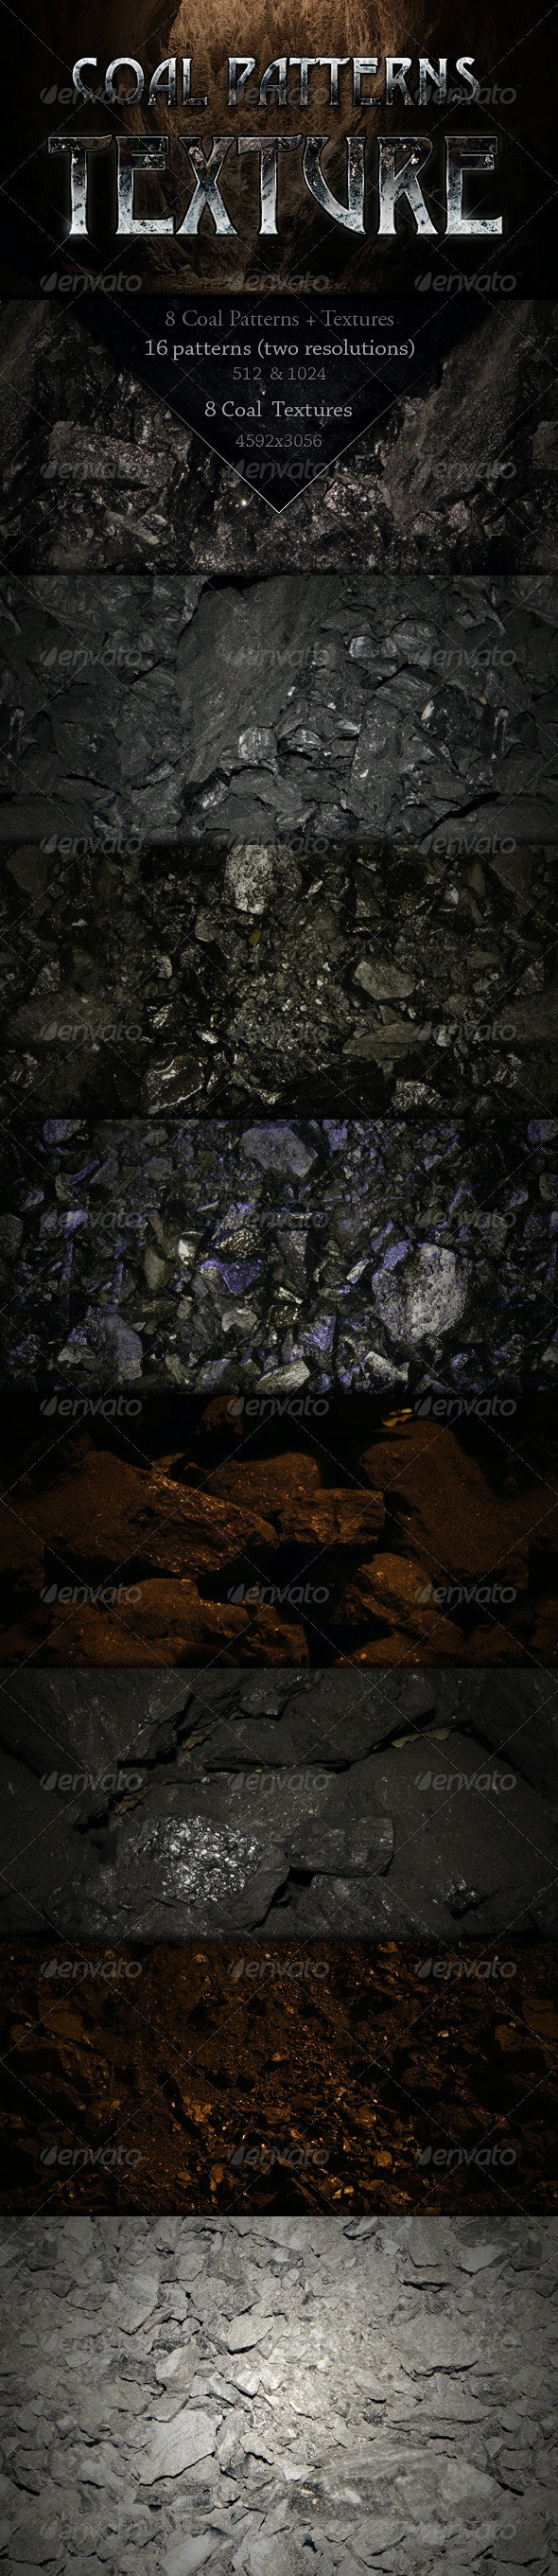 8 Coal Patterns + Textures - Stone Textures